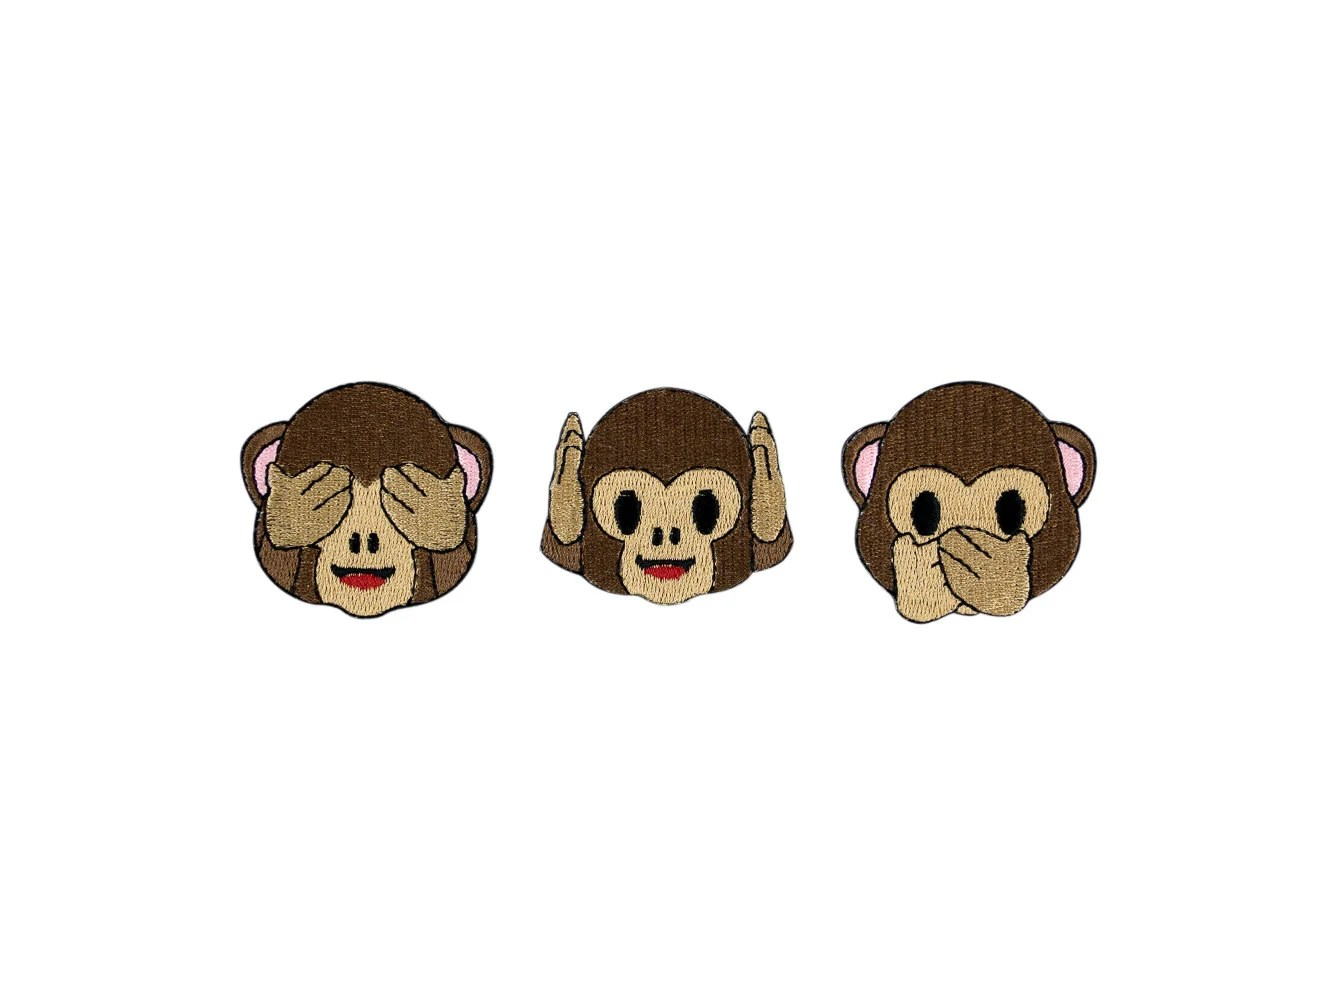 Flower Monkey Emoji New Top Artists 2018 Top Artists 2018